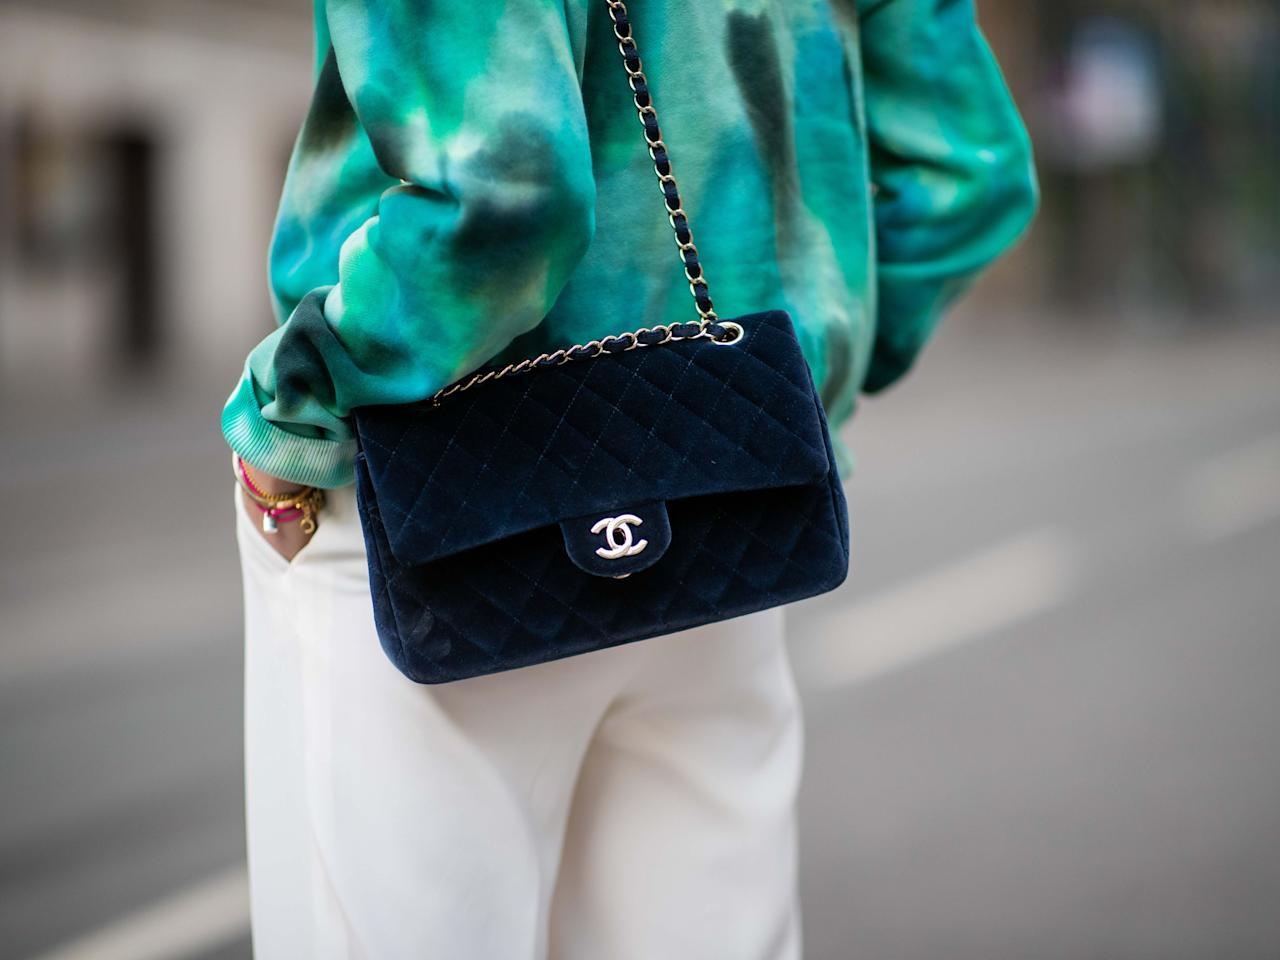 <p>When looking for investment pieces that will truly work hard for years to come, you can't get much more classic and versatile than the shoulder bag. So, if you're looking to update your accessory arsenal but don't want to waste your money on passing trends, we have rounded up 20 stylish shoulder bags that will instantly transform your look, but won't feel dated anytime soon.<br></p><p>Scroll through to shop our edit, where we have included the classics, including the extremely popular Prada Re-edition shoulder bag, as well as the playful twists on cult styles, such as the pastel version of Gucci's timeless Marmont bag. </p><p>Whether small and compact, and therefore perfect for the evening, or something big enough to work all day long, there are plenty of shoulder bags to choose from, whatever your style.</p>